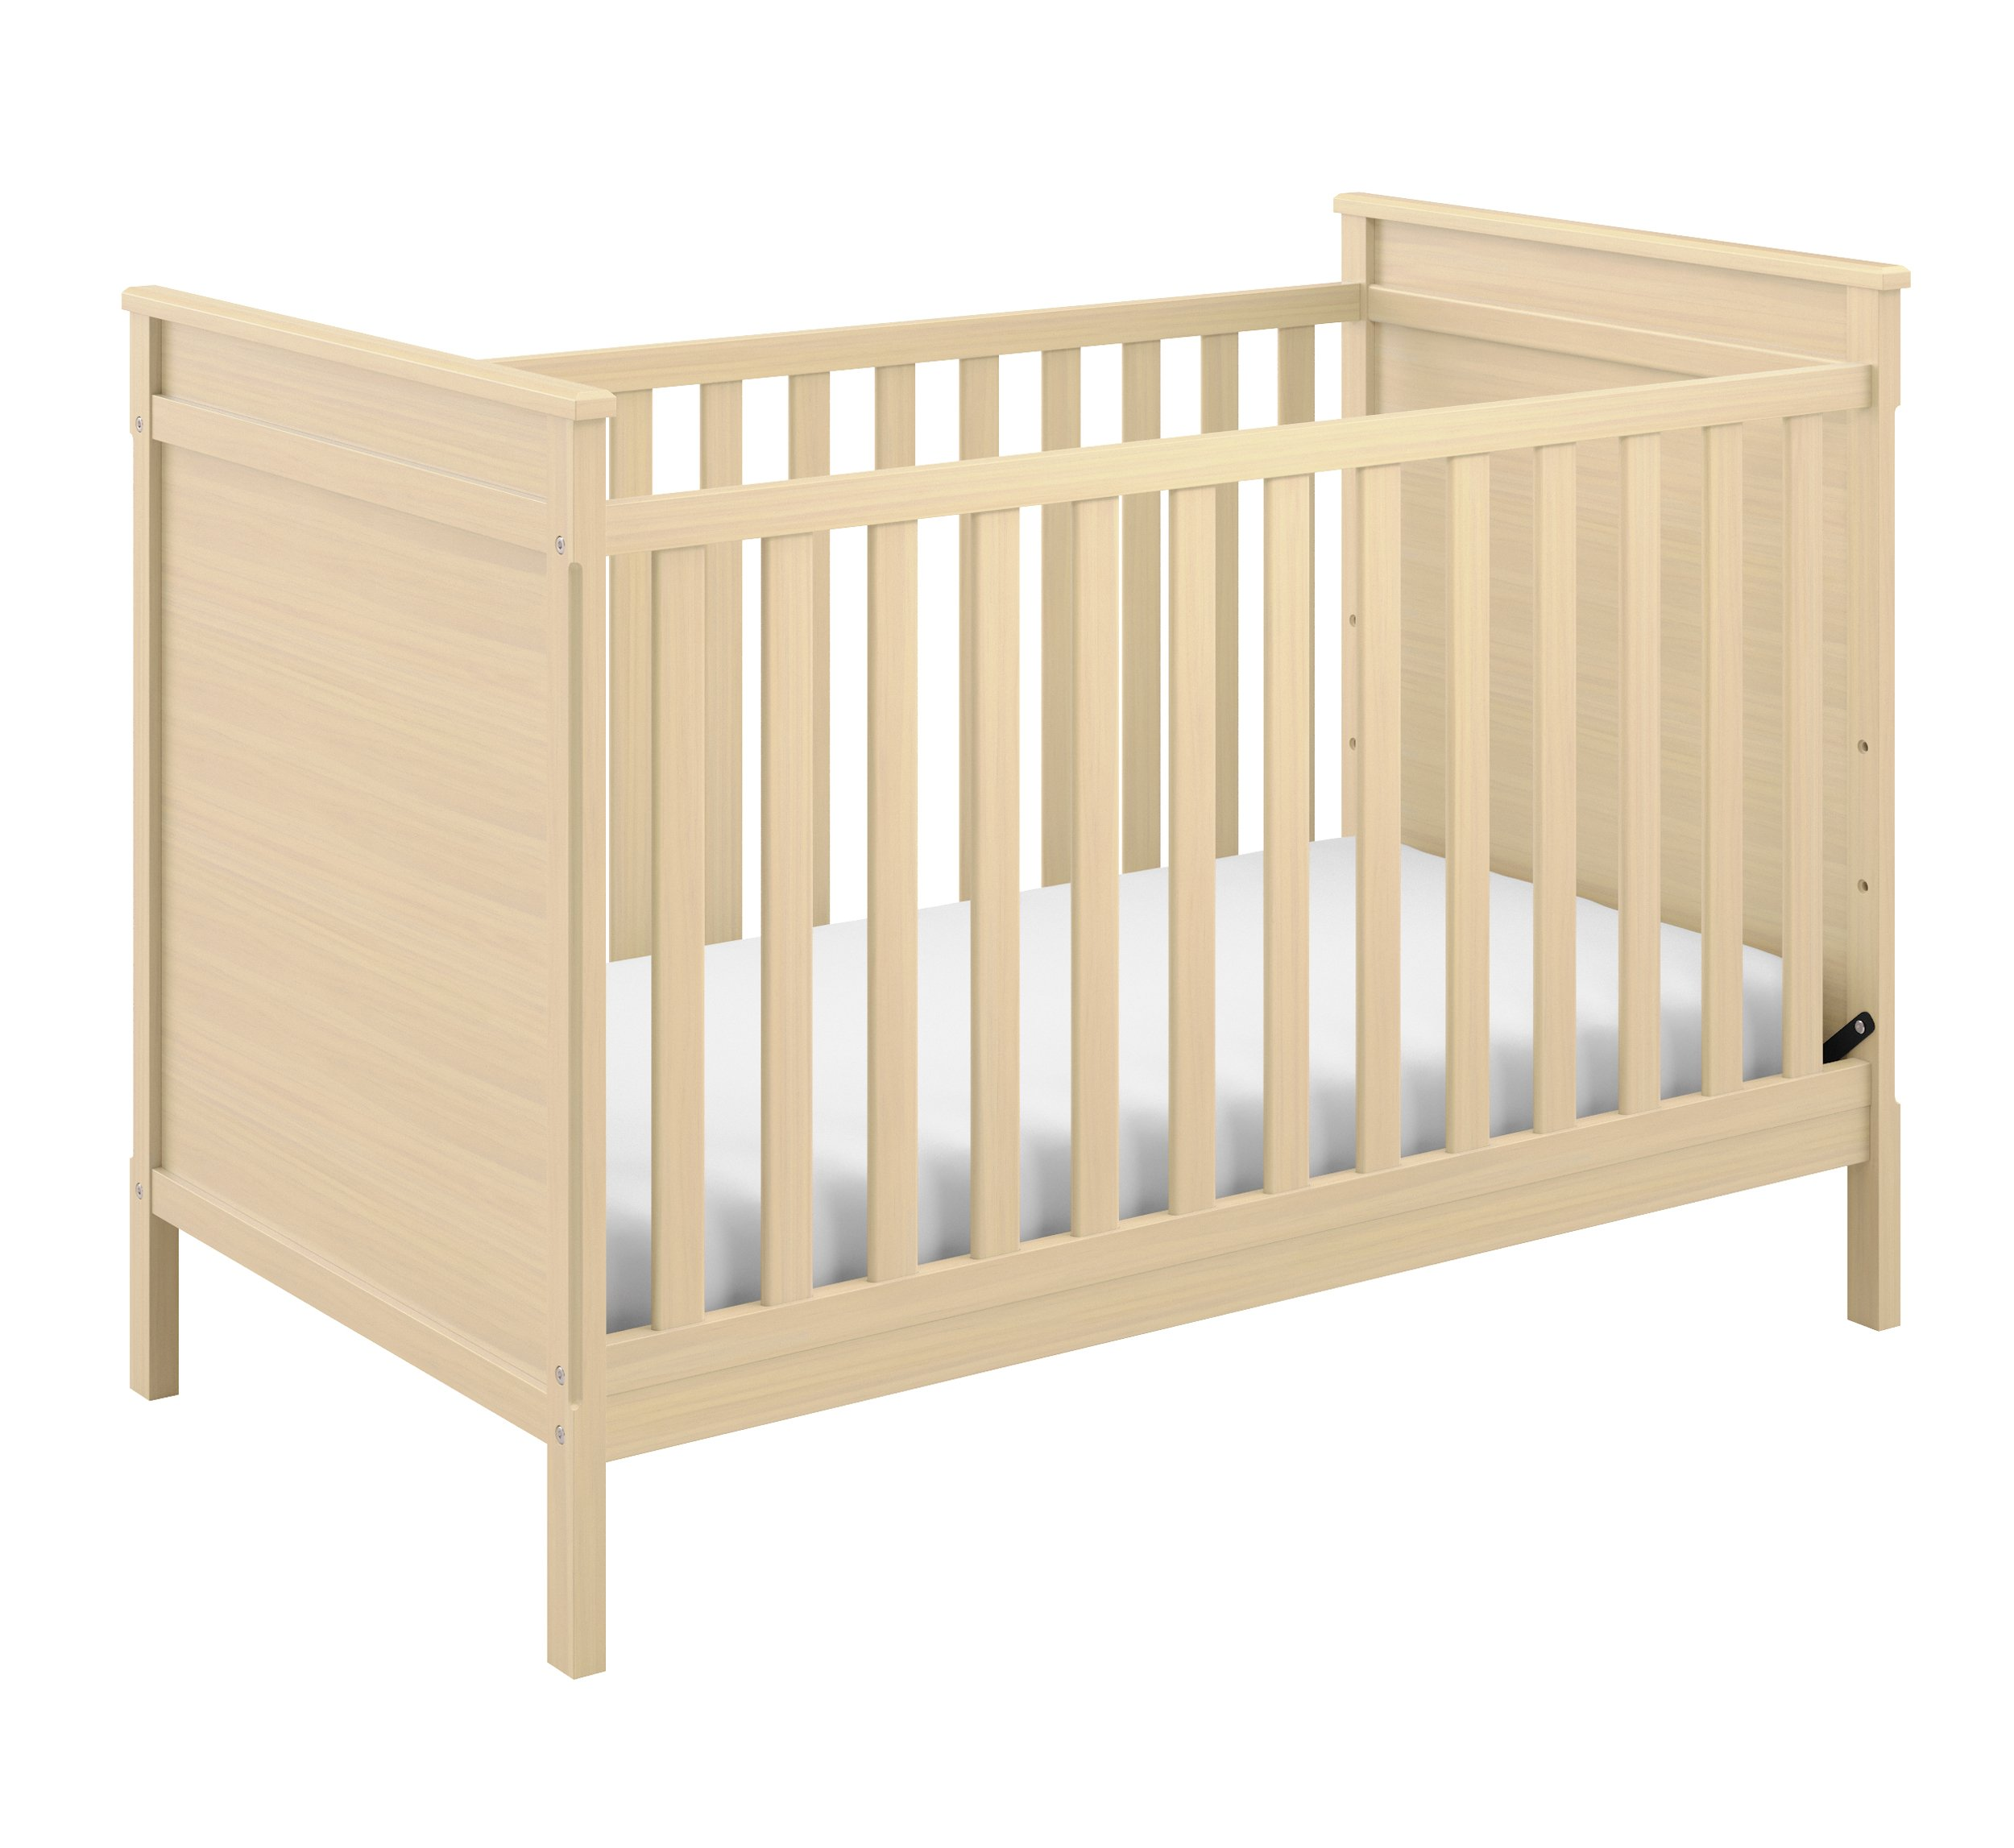 3 in 1 design the storkcraft 3 in 1 convertible crib converts easily from crib to toddler bed day bed made of durable high quality pine wood